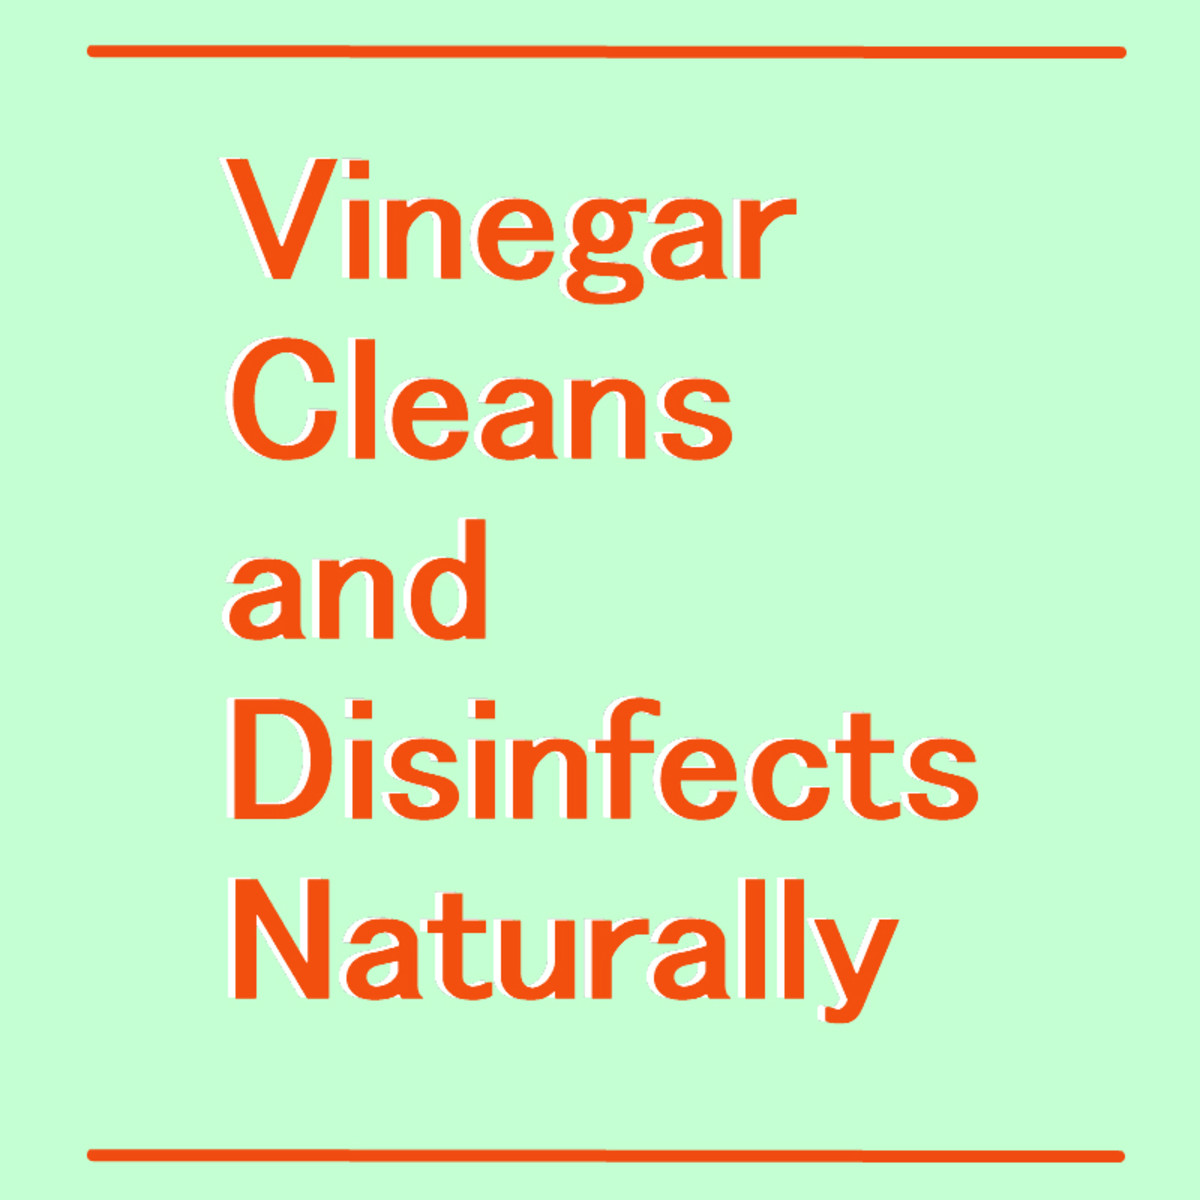 Vinegar is a natural cleaner and disinfectant, read the article to see how many things can be cleaned with vinegar!